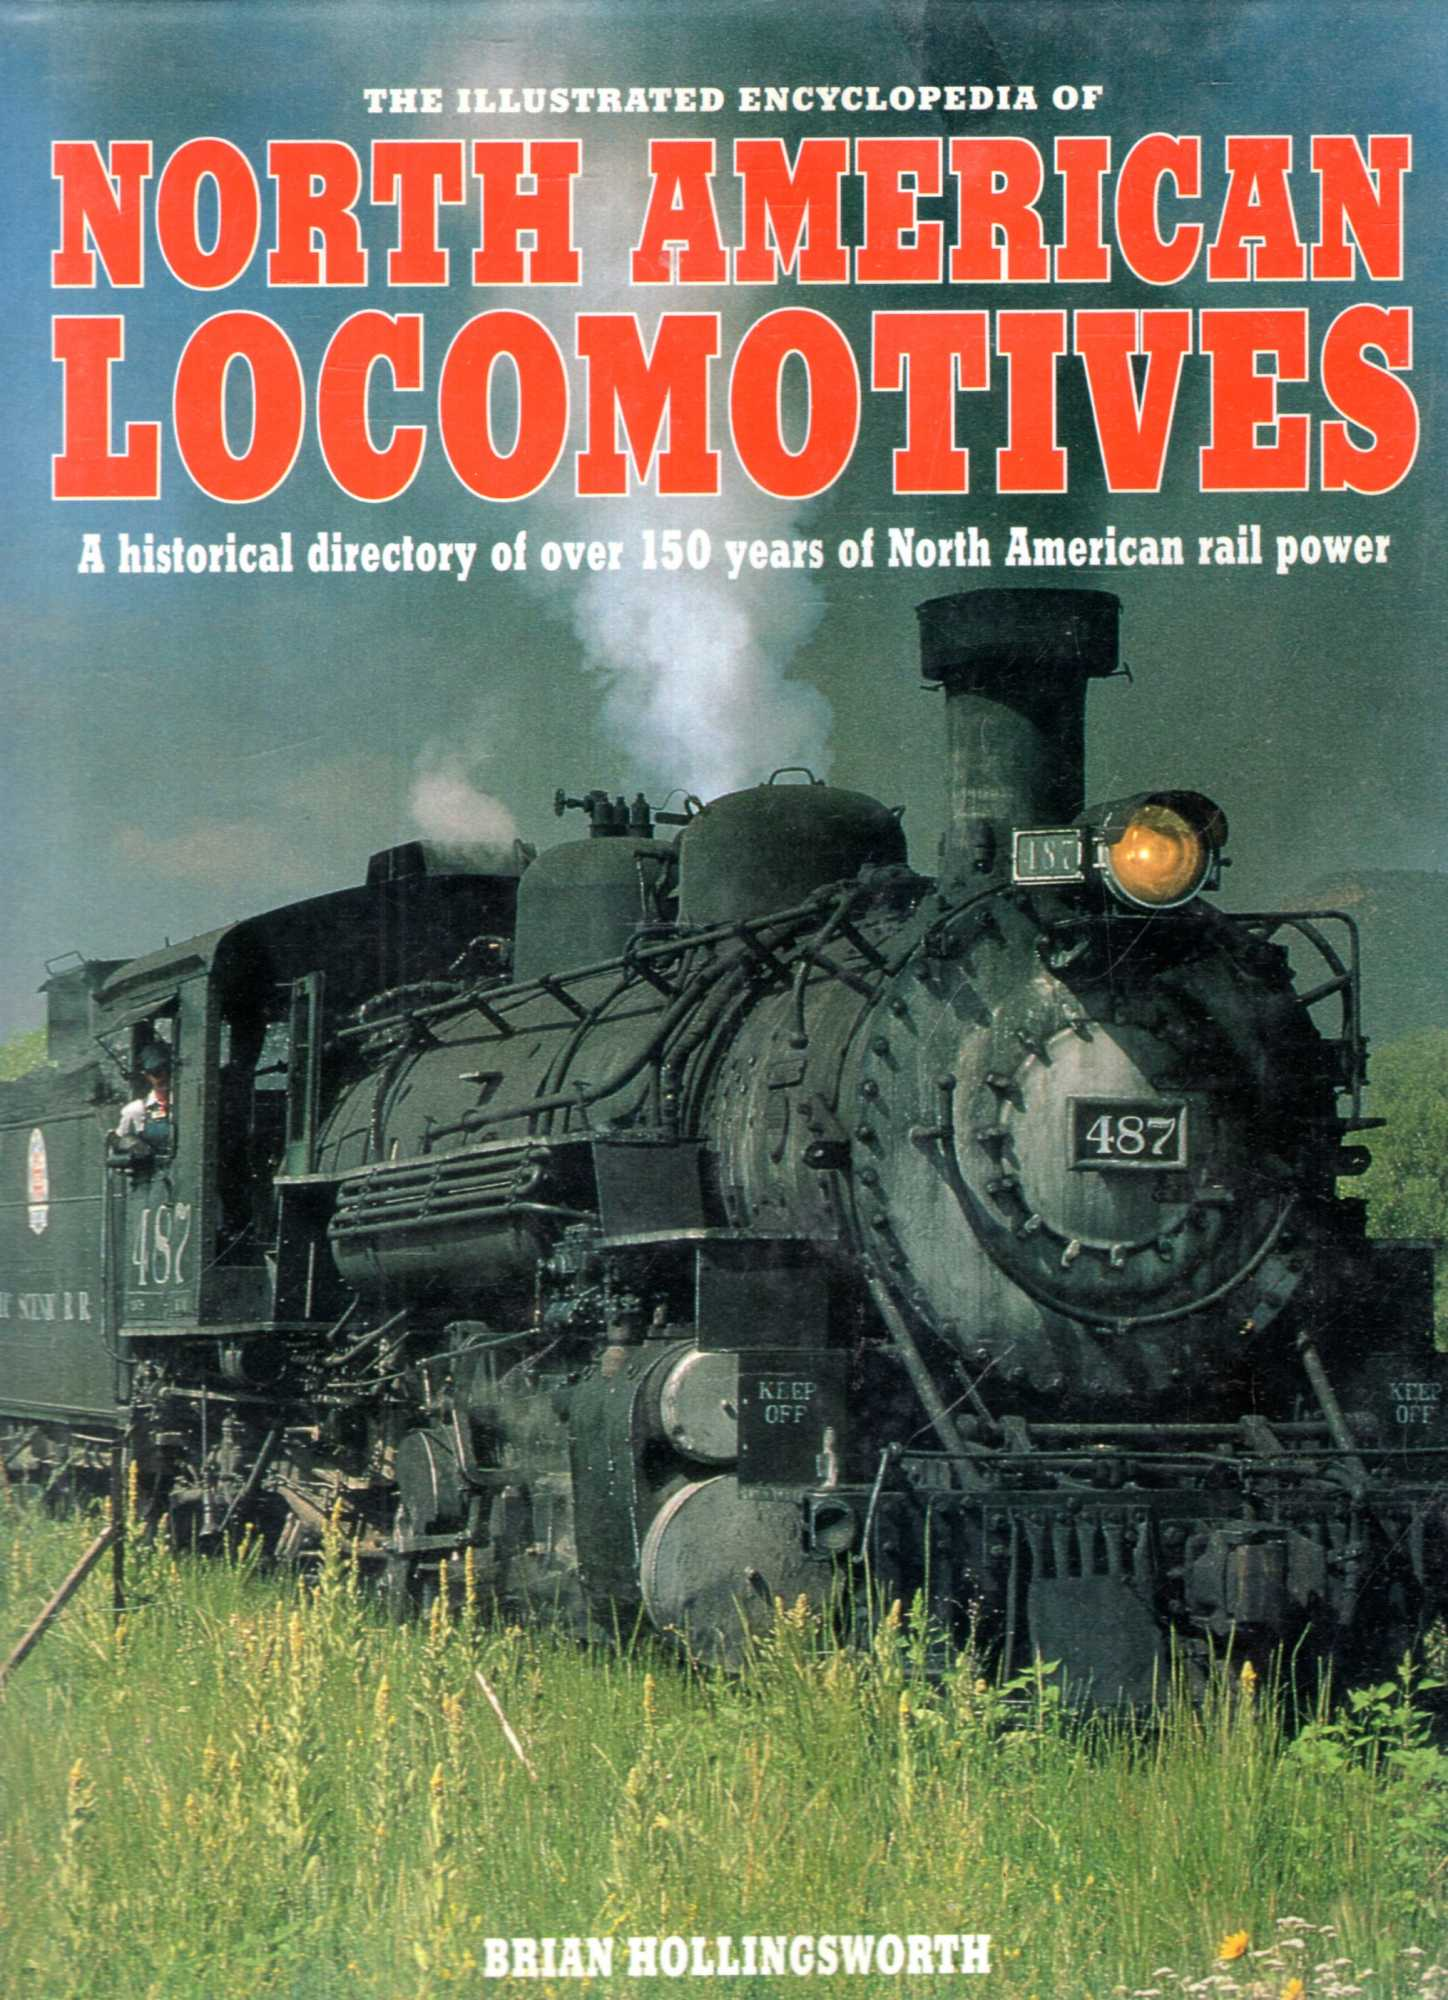 Image for The Illustrated Encyclopedia of North American Locomotives : A Historical Directory of over 150 Years of North American Rail Power